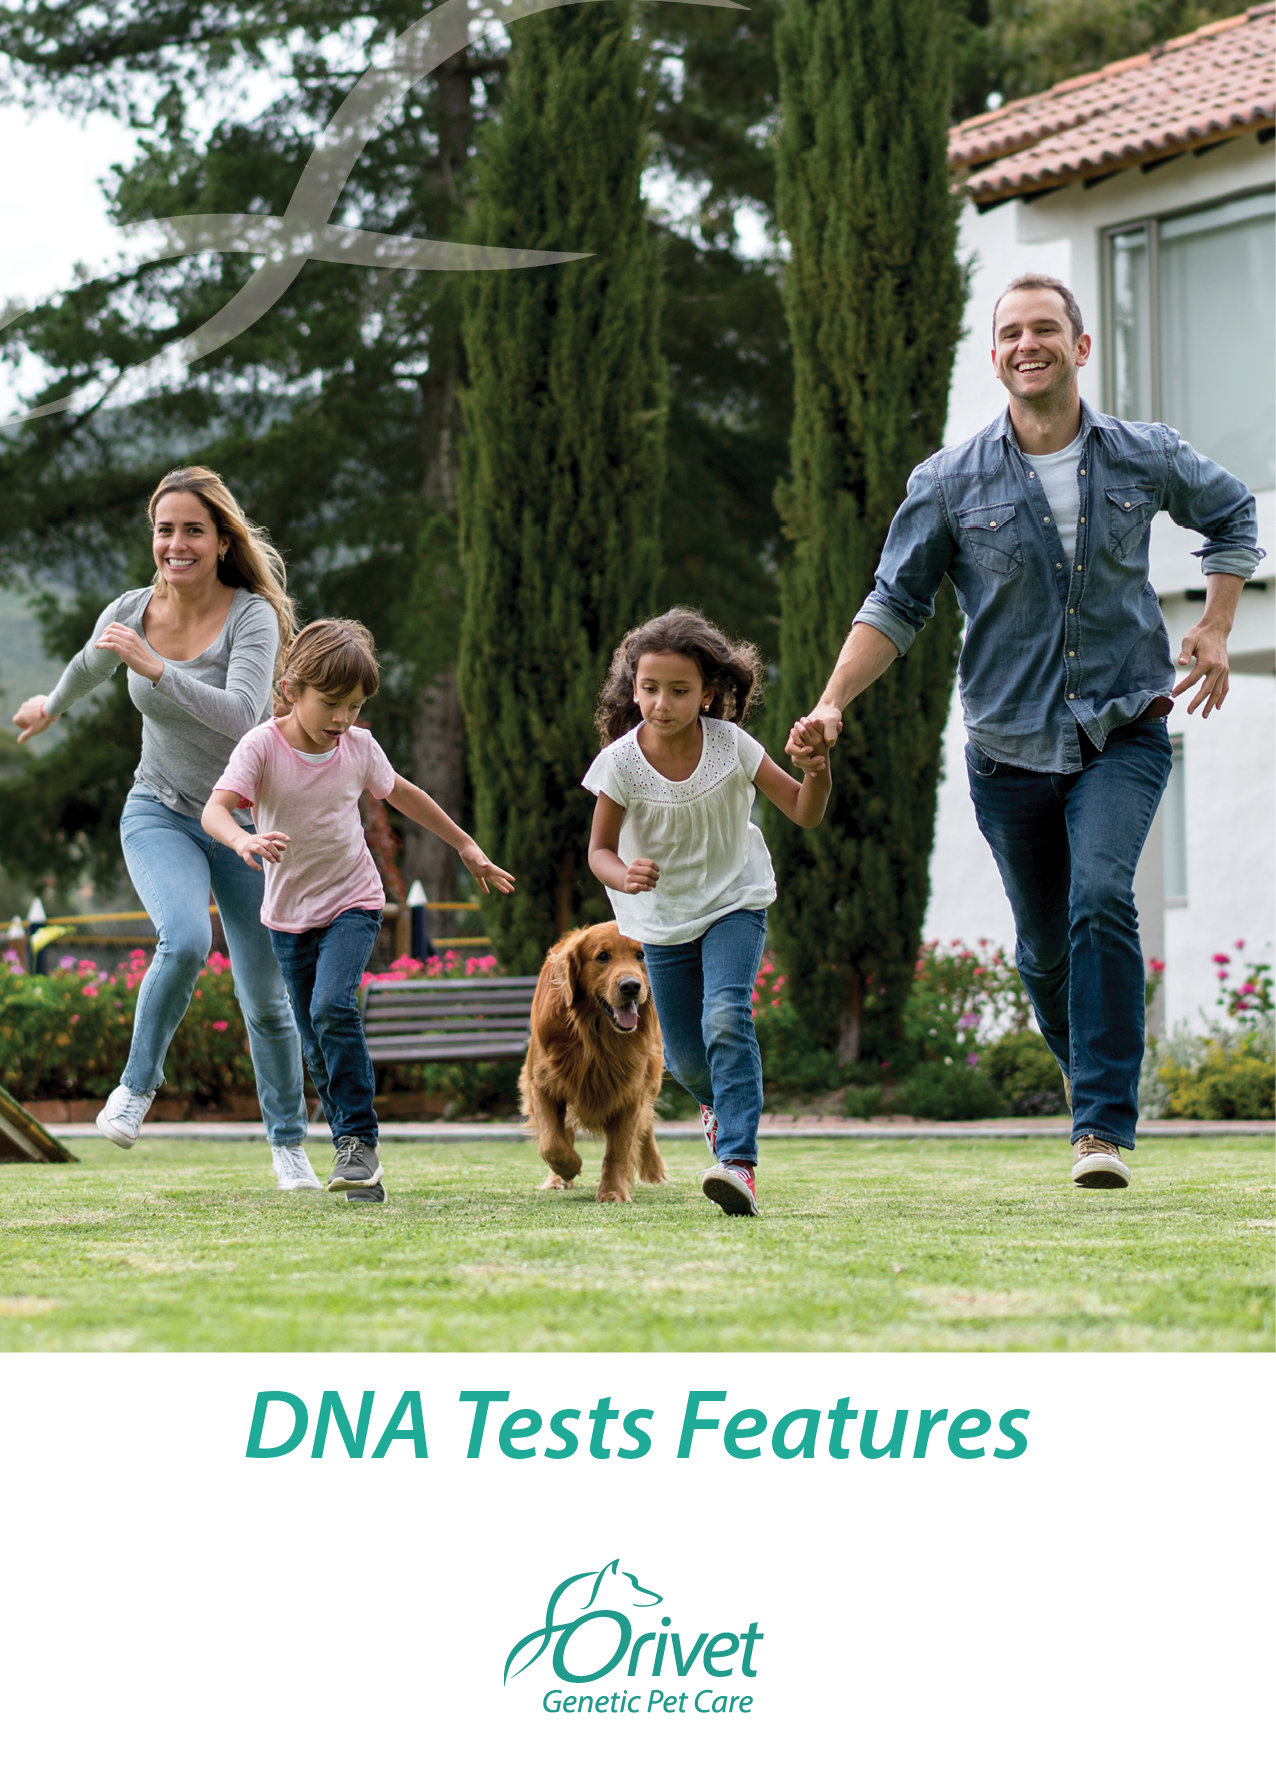 PDF design - DNA Tests Features by Igor 'Nester' Nesterenko at